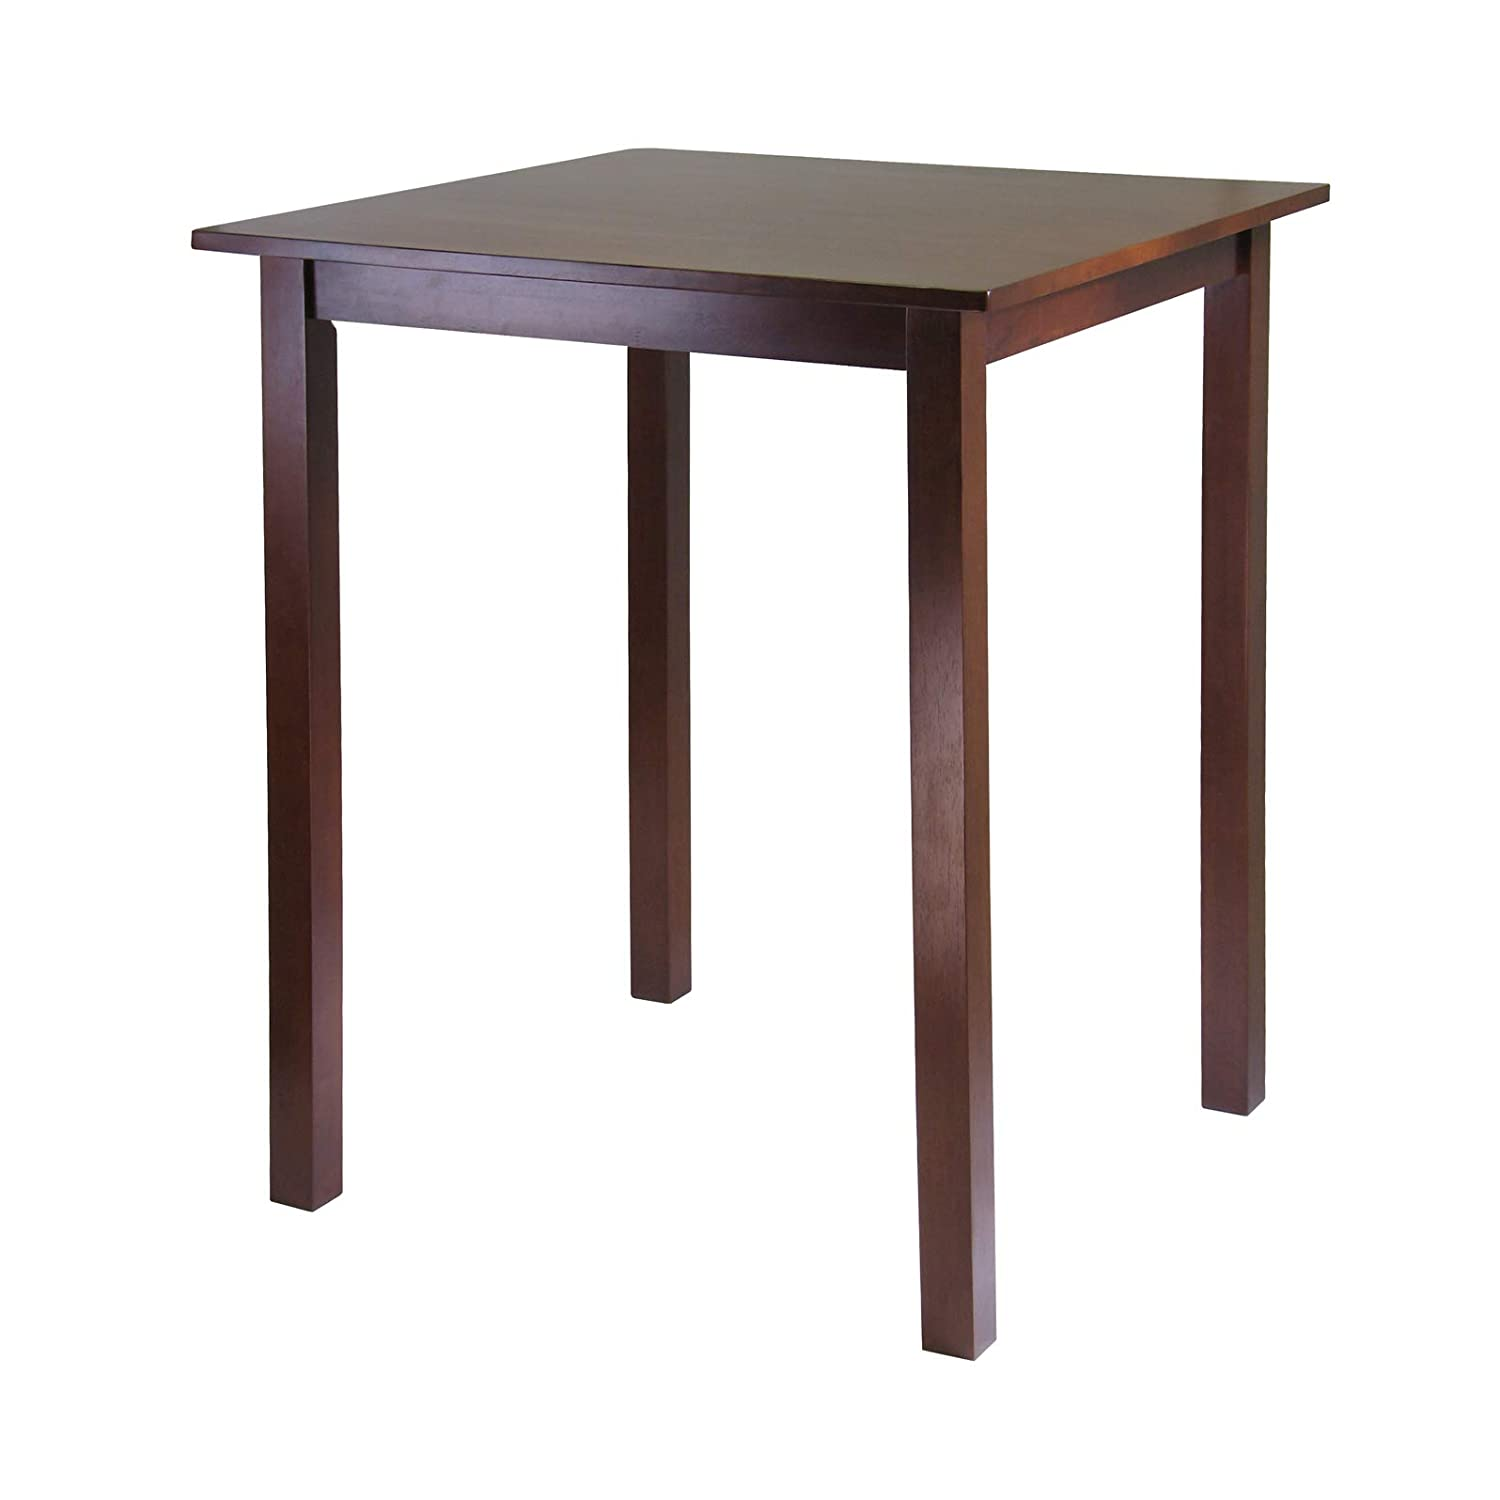 Winsome Wood 94134 Parkland Dining, Walnut